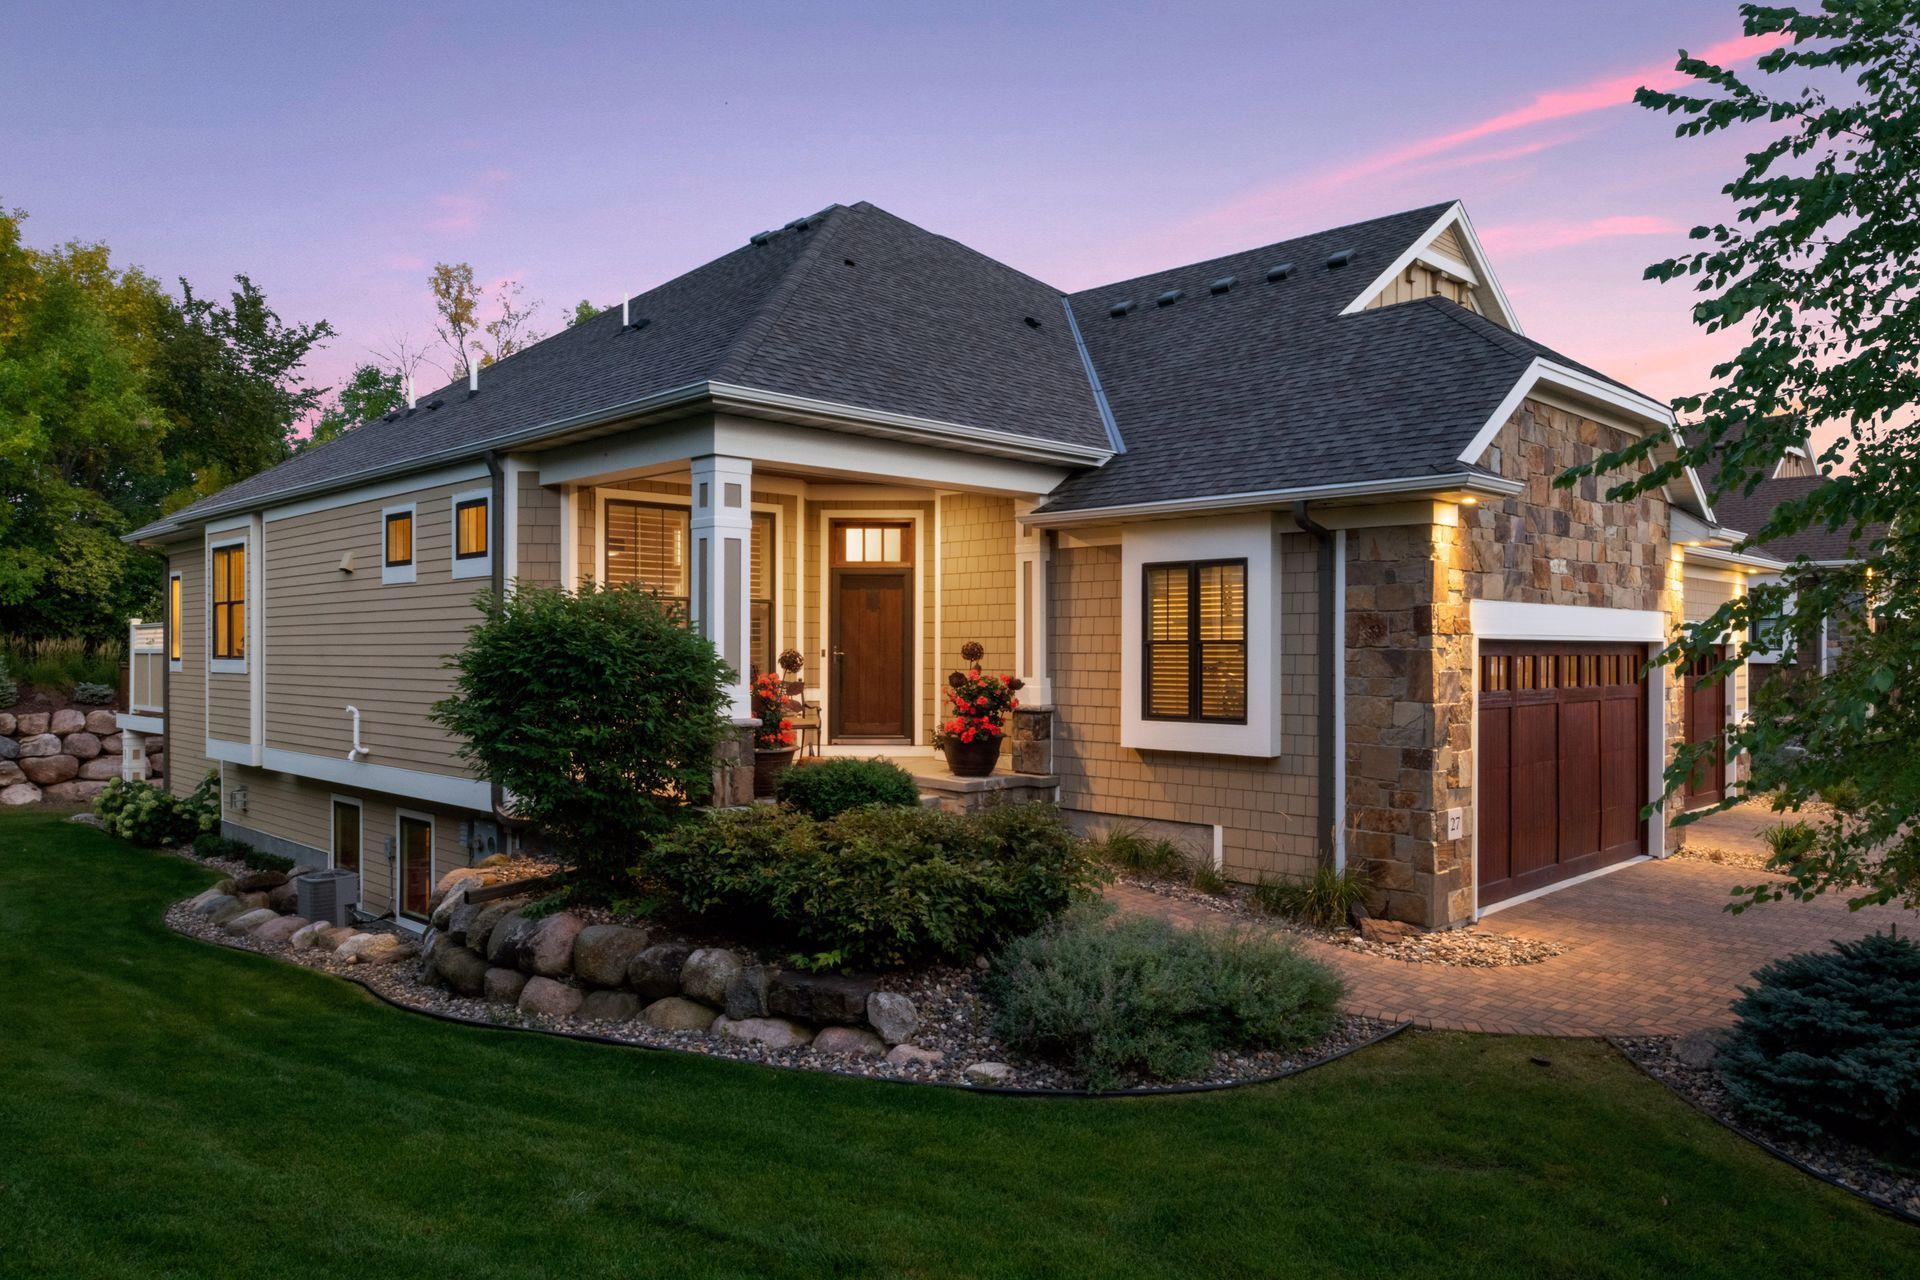 27 Riley Ridge Property Photo - Chanhassen, MN real estate listing